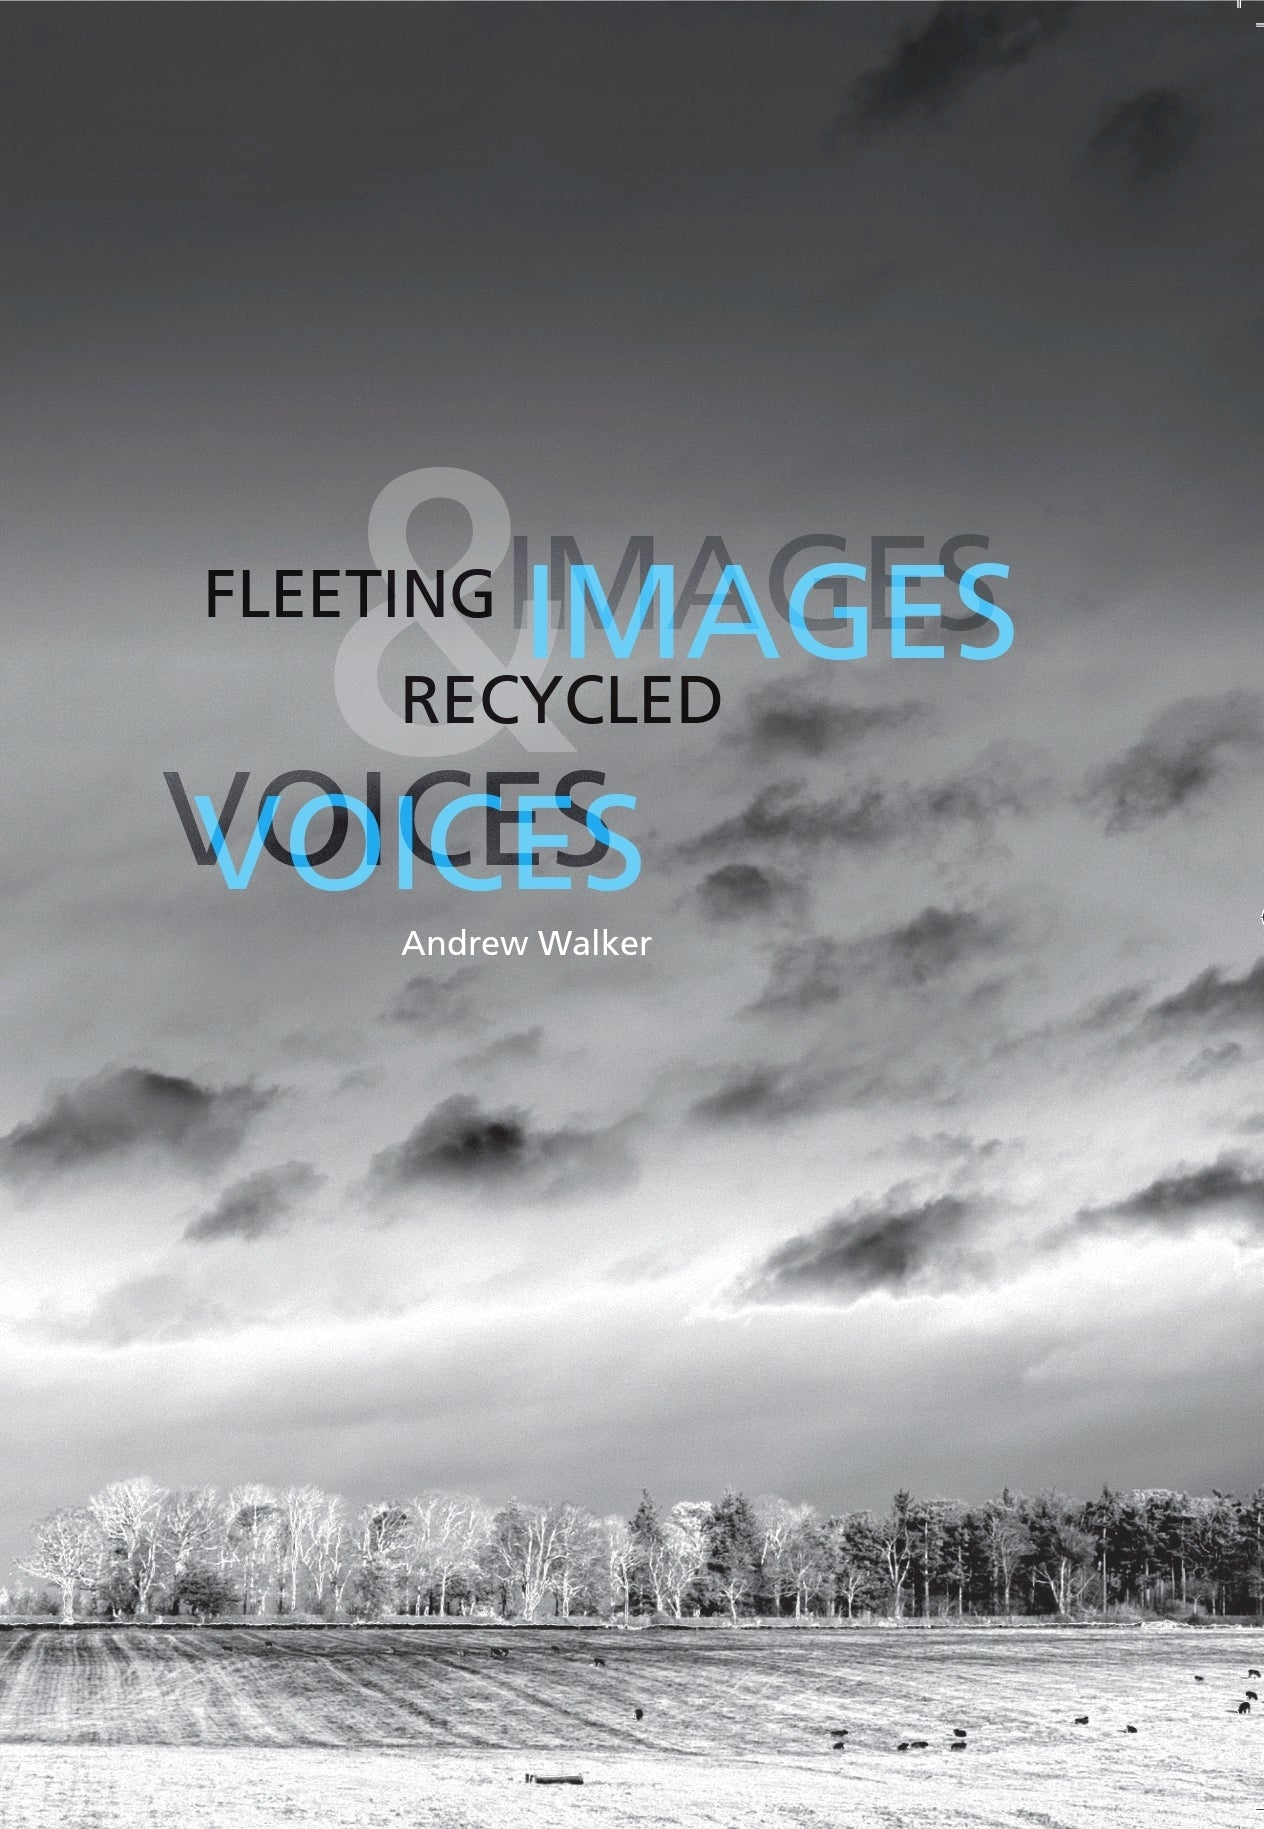 Fleeting Images & Recycled Voices by Andrew Walker